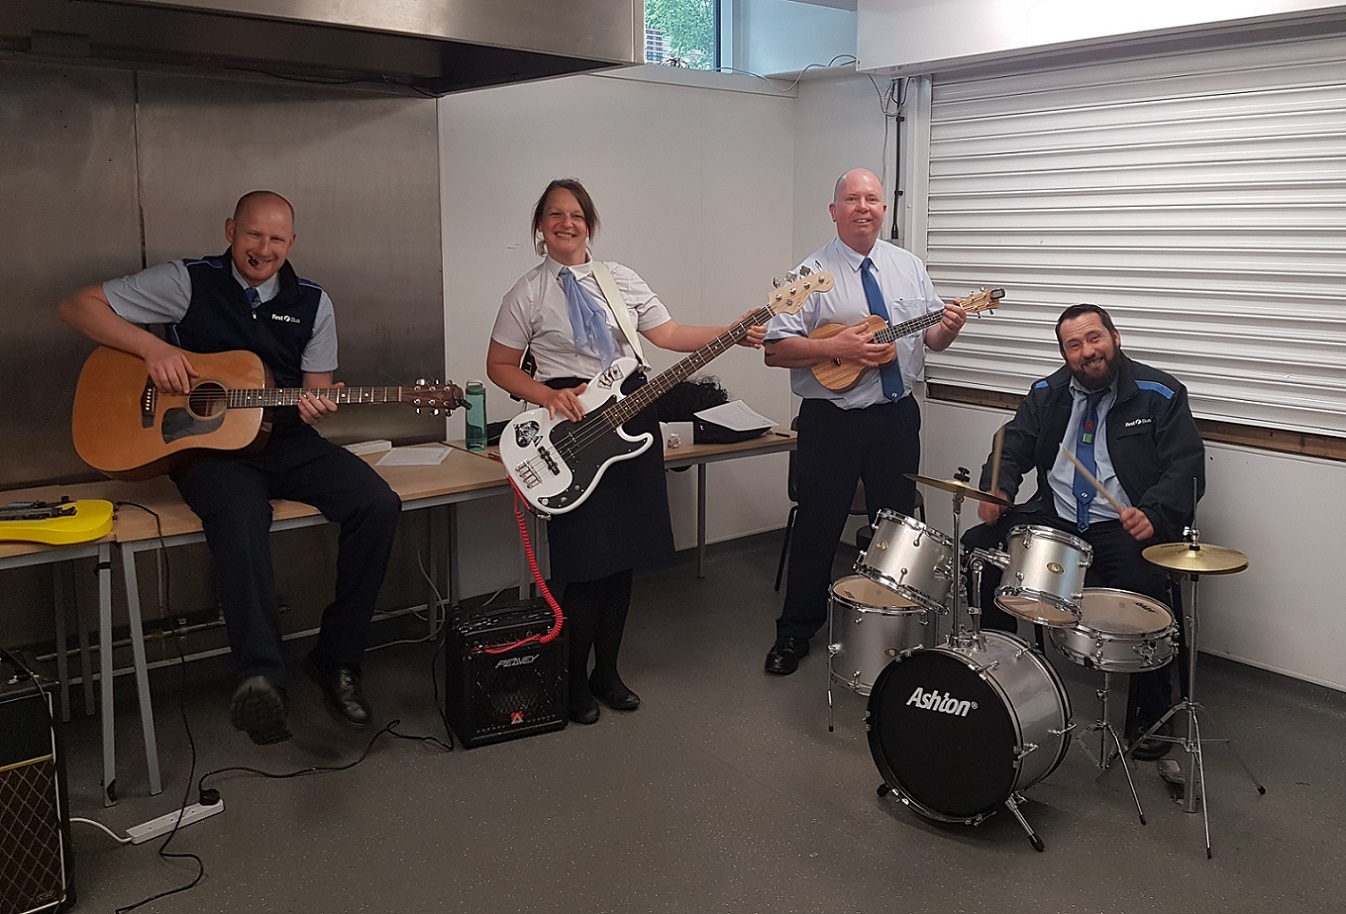 Unite members band together to support learning